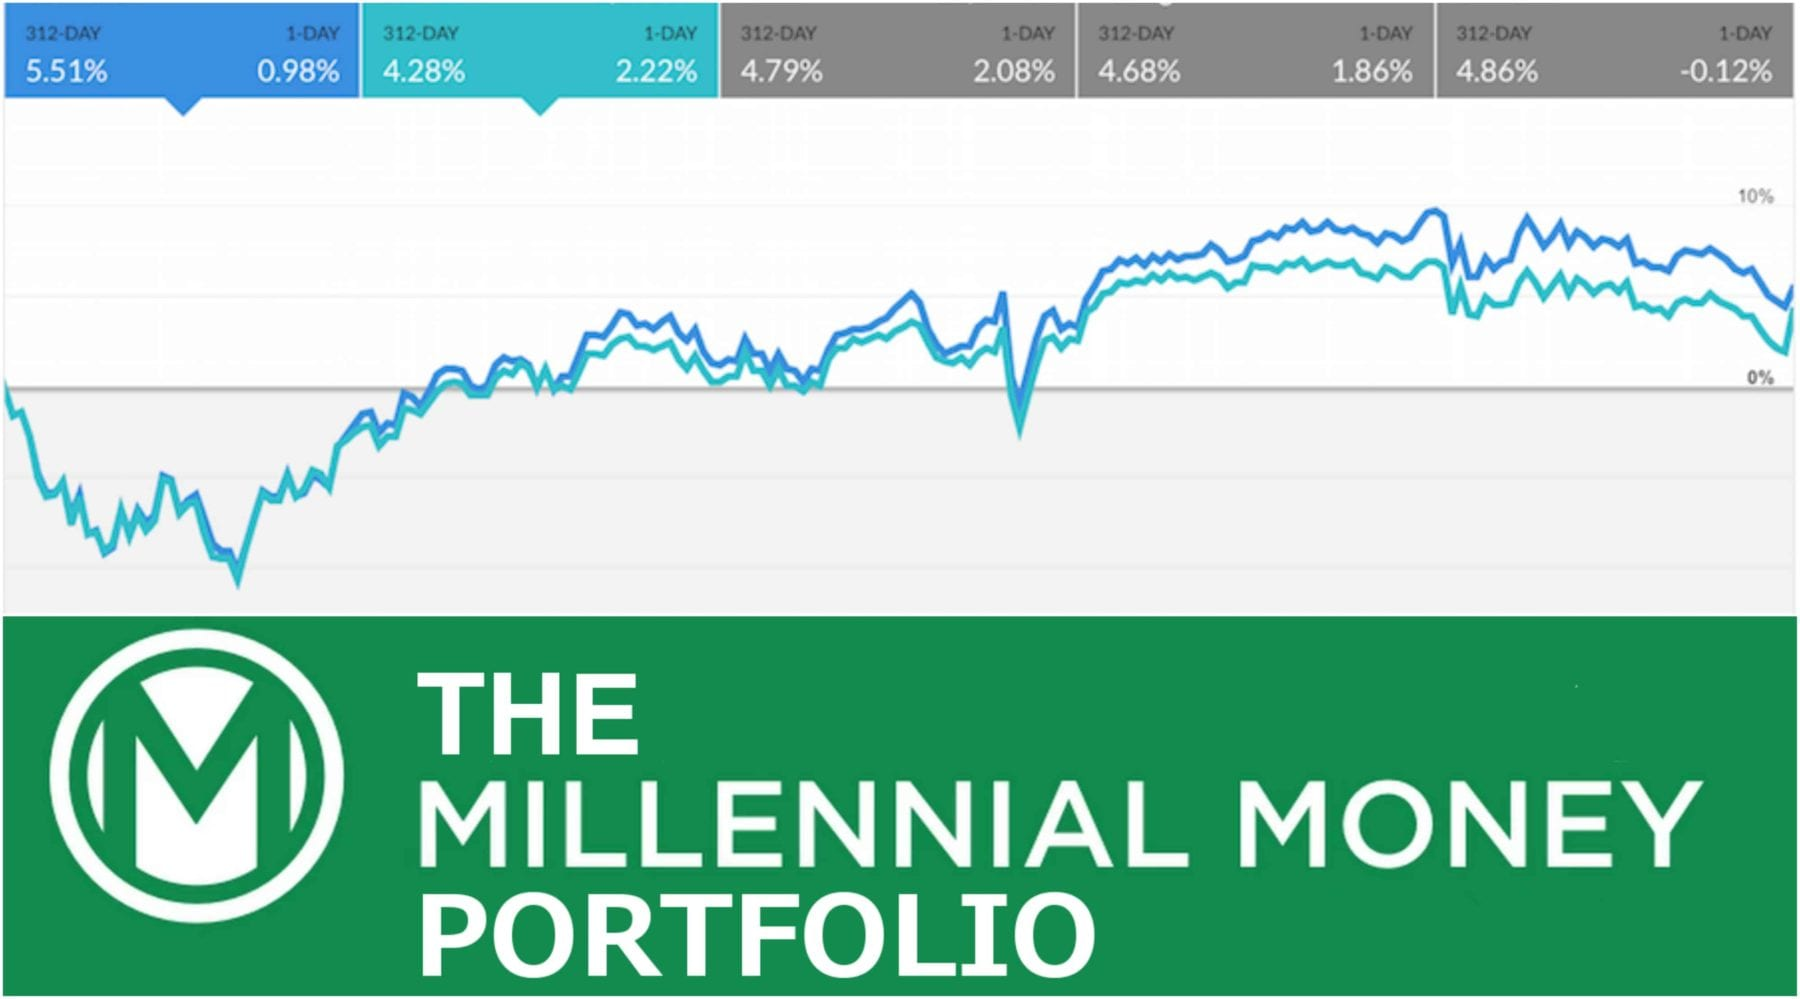 The Millennial Money Portfolio